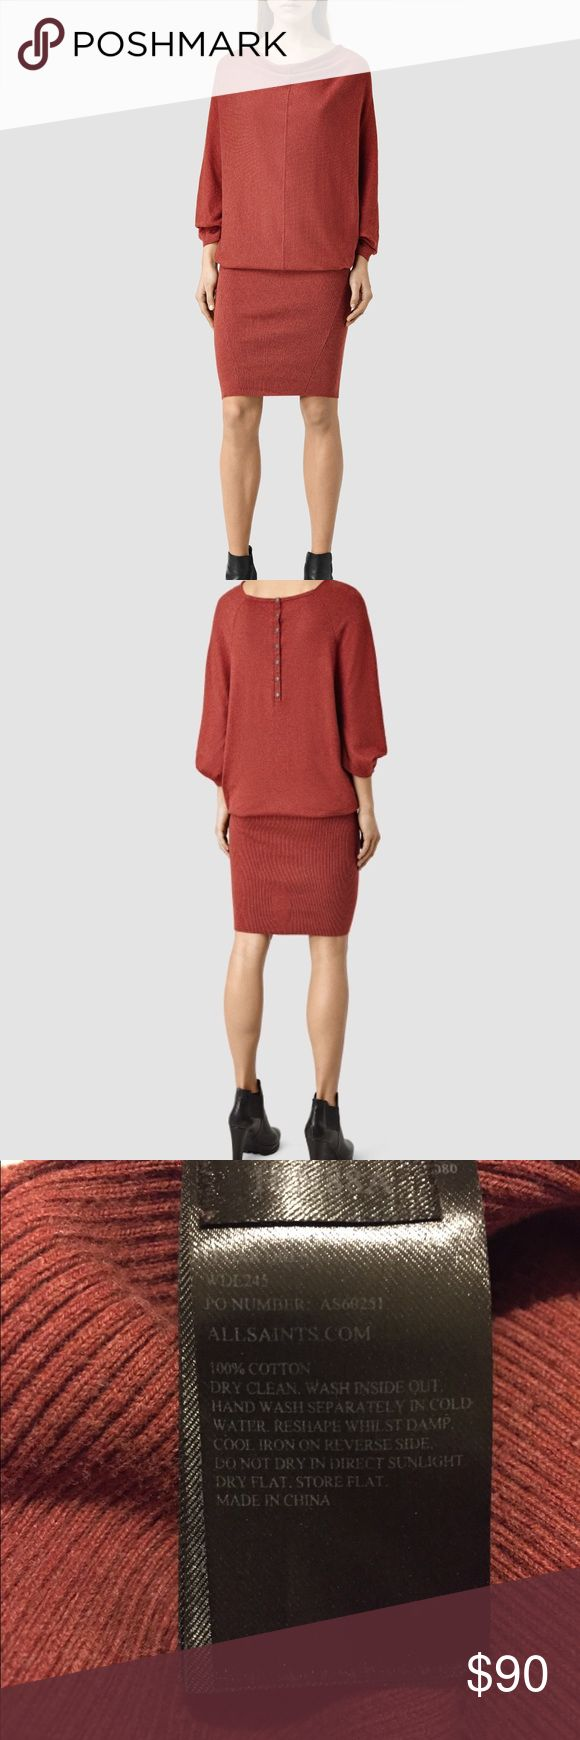 AllSaints Fall Cotton Knit Dress AllSaints Elgar Dress ✔️100% Portuguese Cotton ✔️Handwash or Dry Clean  Get a piece of UK's top fashion forward high end street style brand! All Saints Dresses Midi